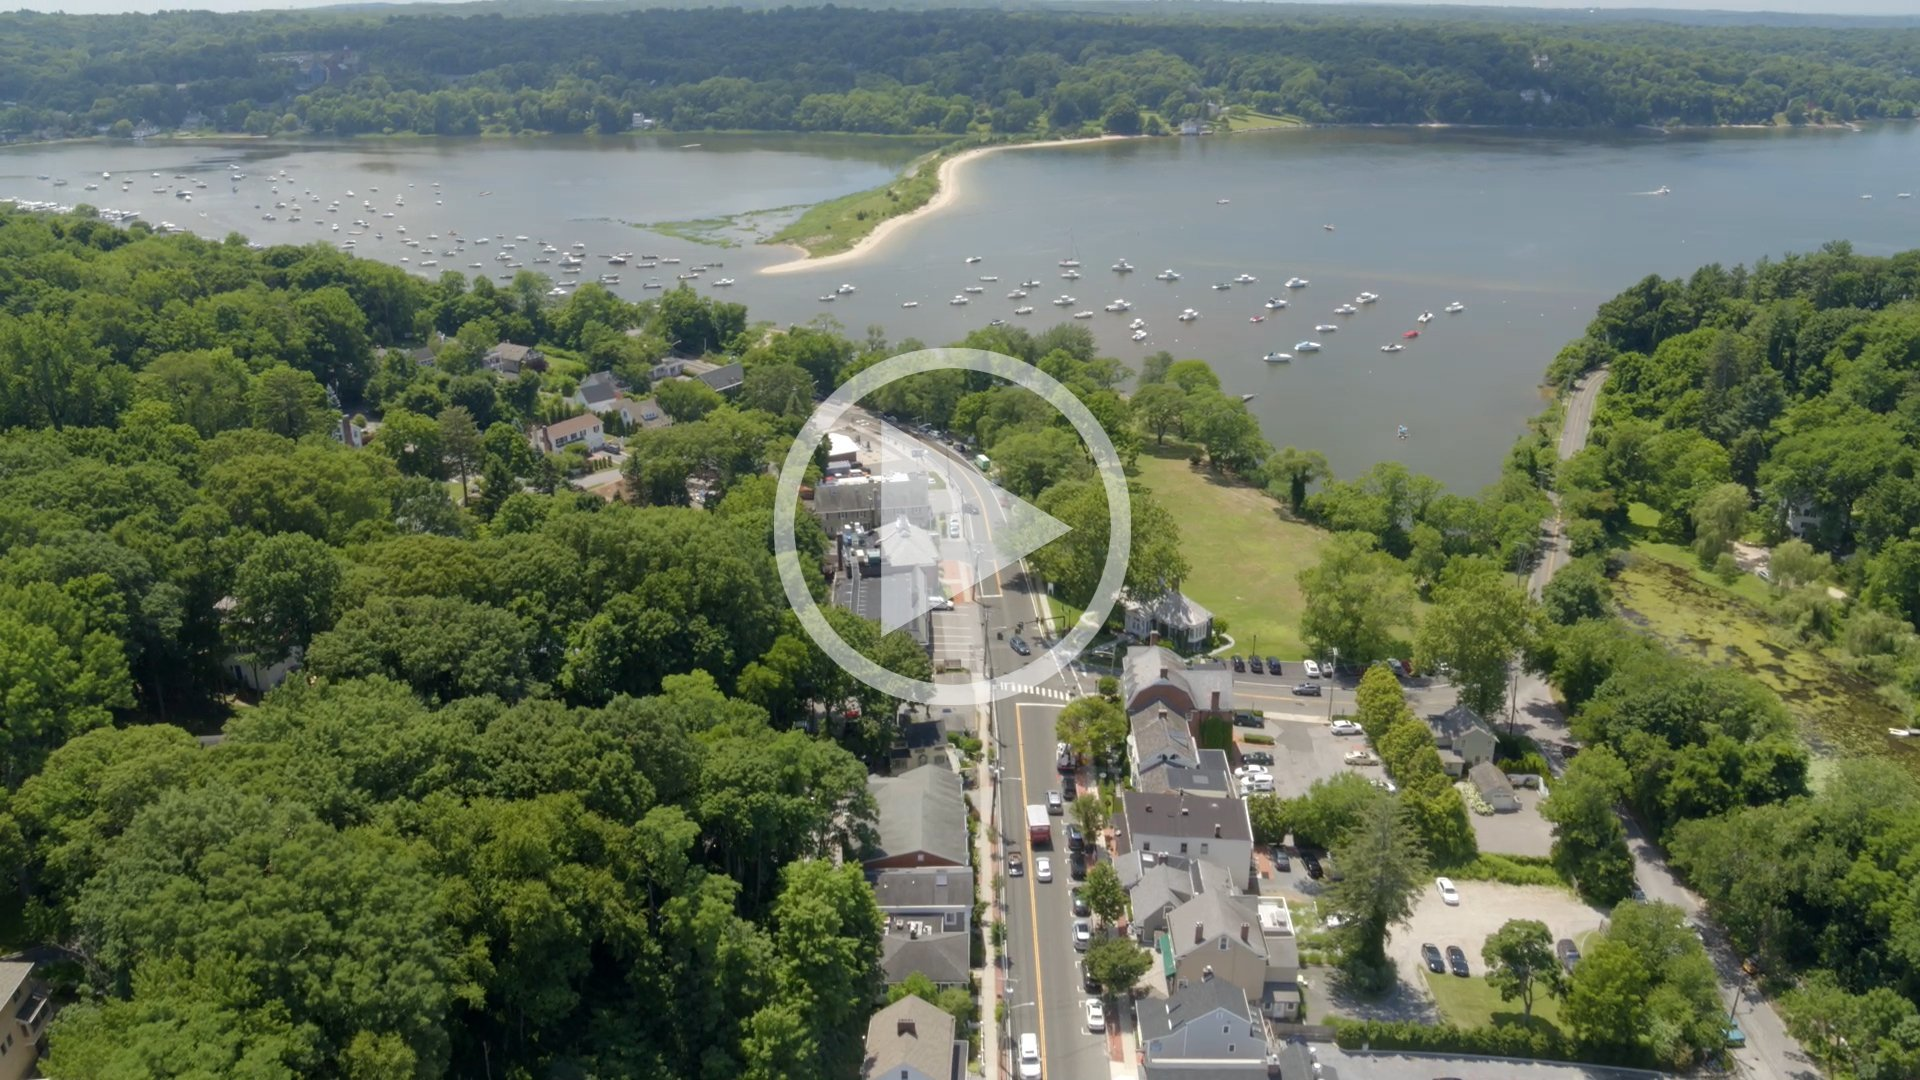 EXPLORE COLD SPRING HILLS